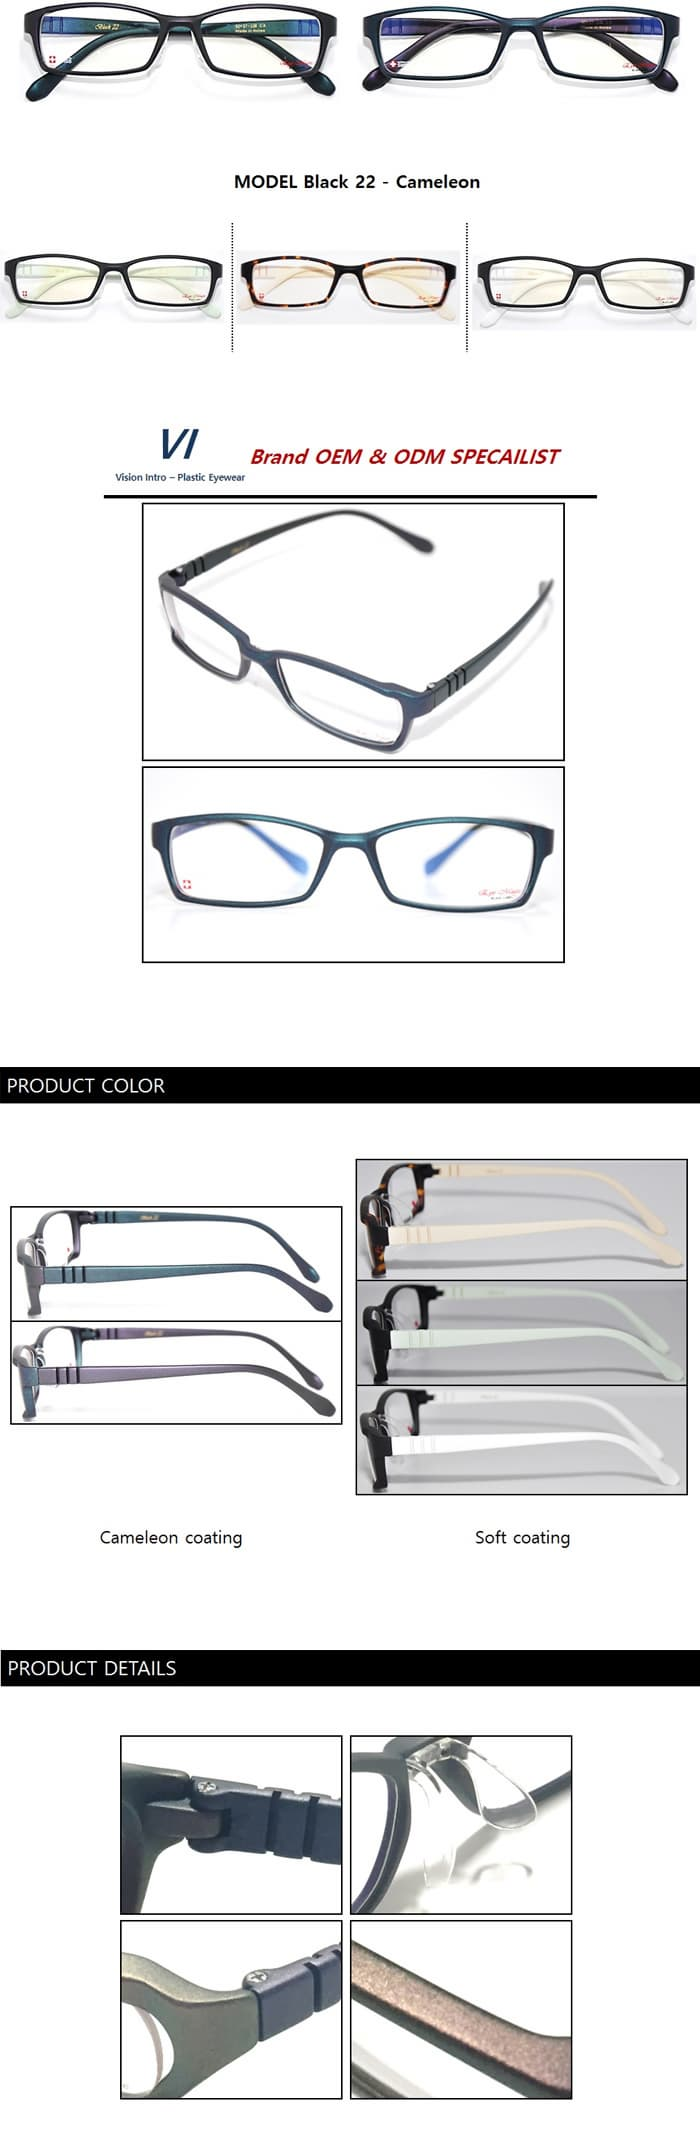 Optical Frame Fashion Eyewear TR90 Cameleon